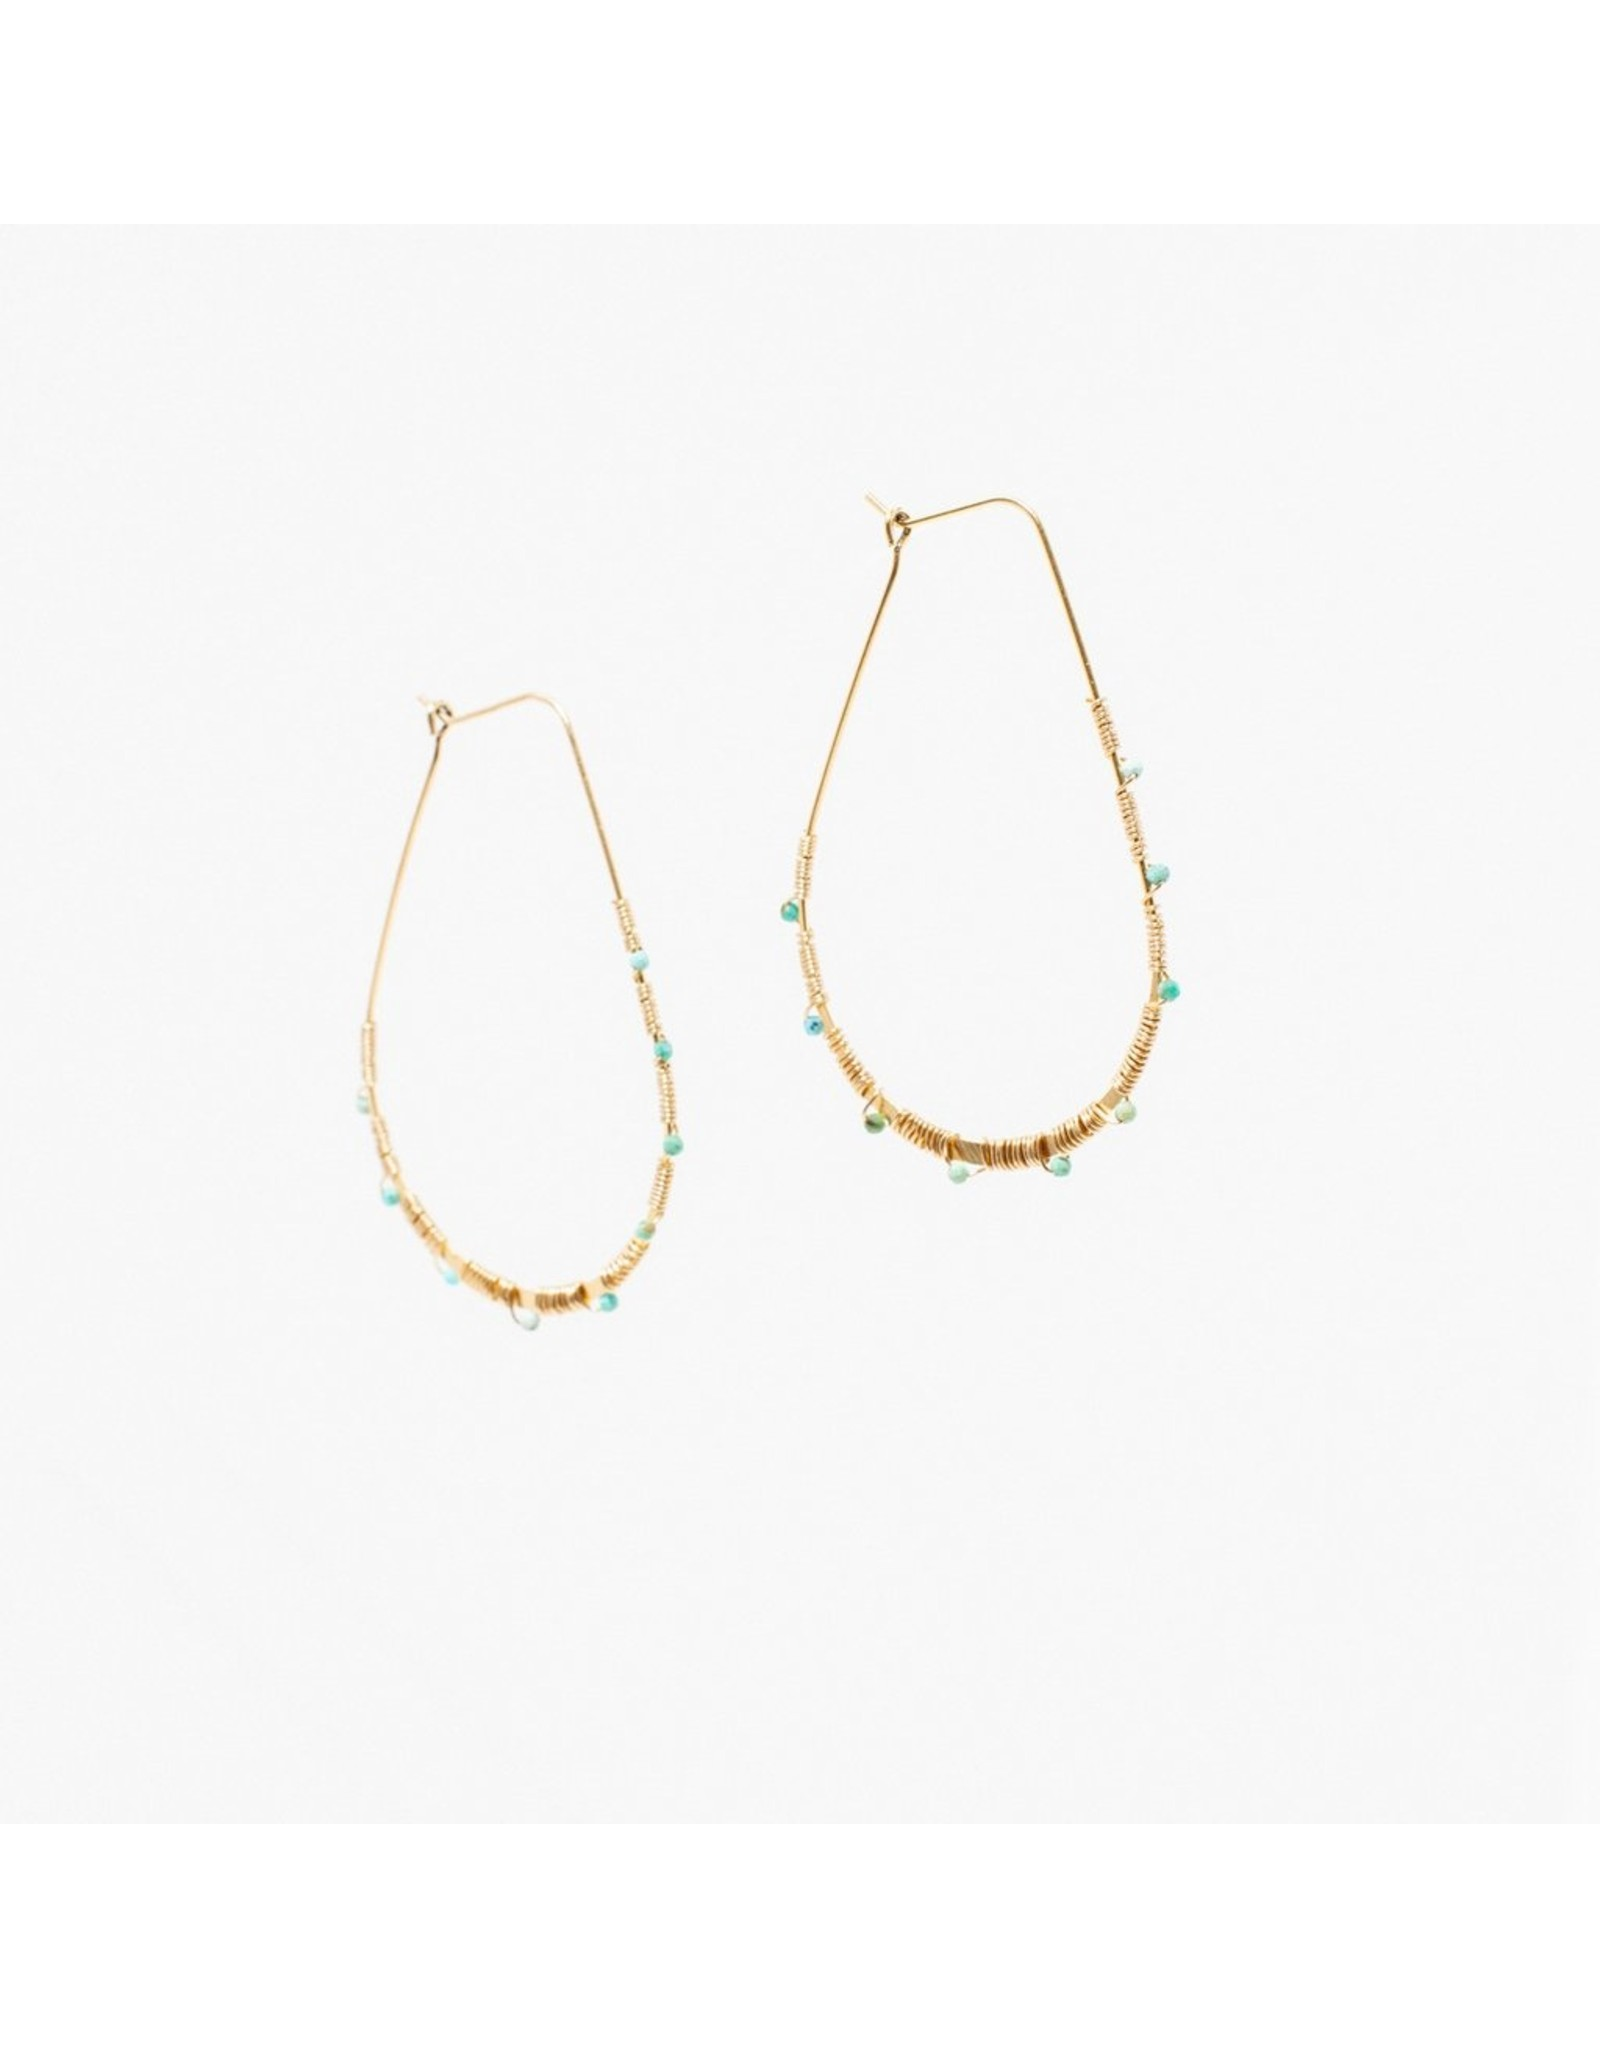 Larissa Loden Eva earrings